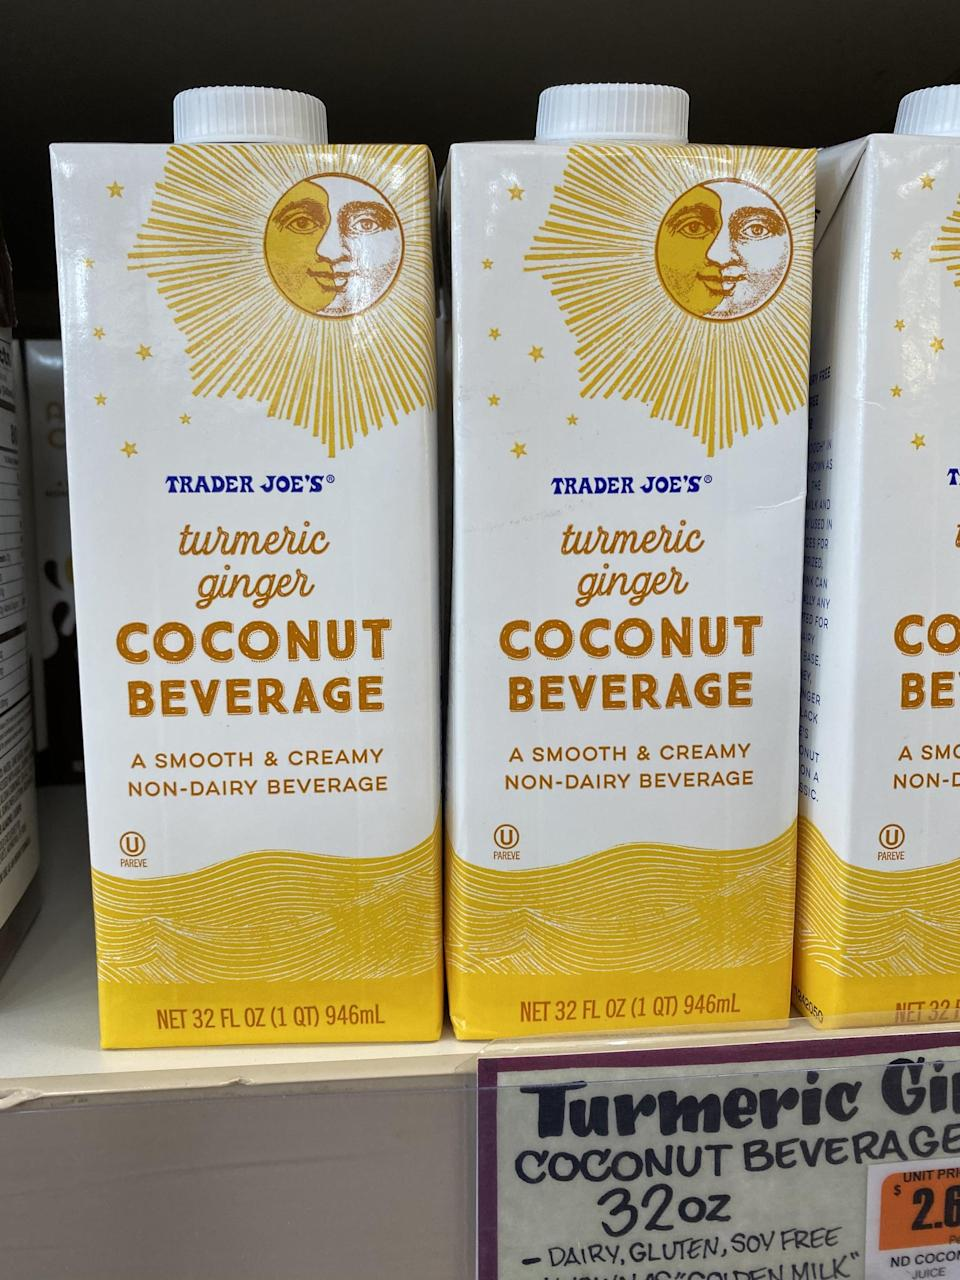 <p>This Turmeric Ginger Coconut Beverage tastes delicious on its own, but is also amazing warmed up, added to chai tea or coffee, mixed into oatmeal, or used in all your fall baking. </p>